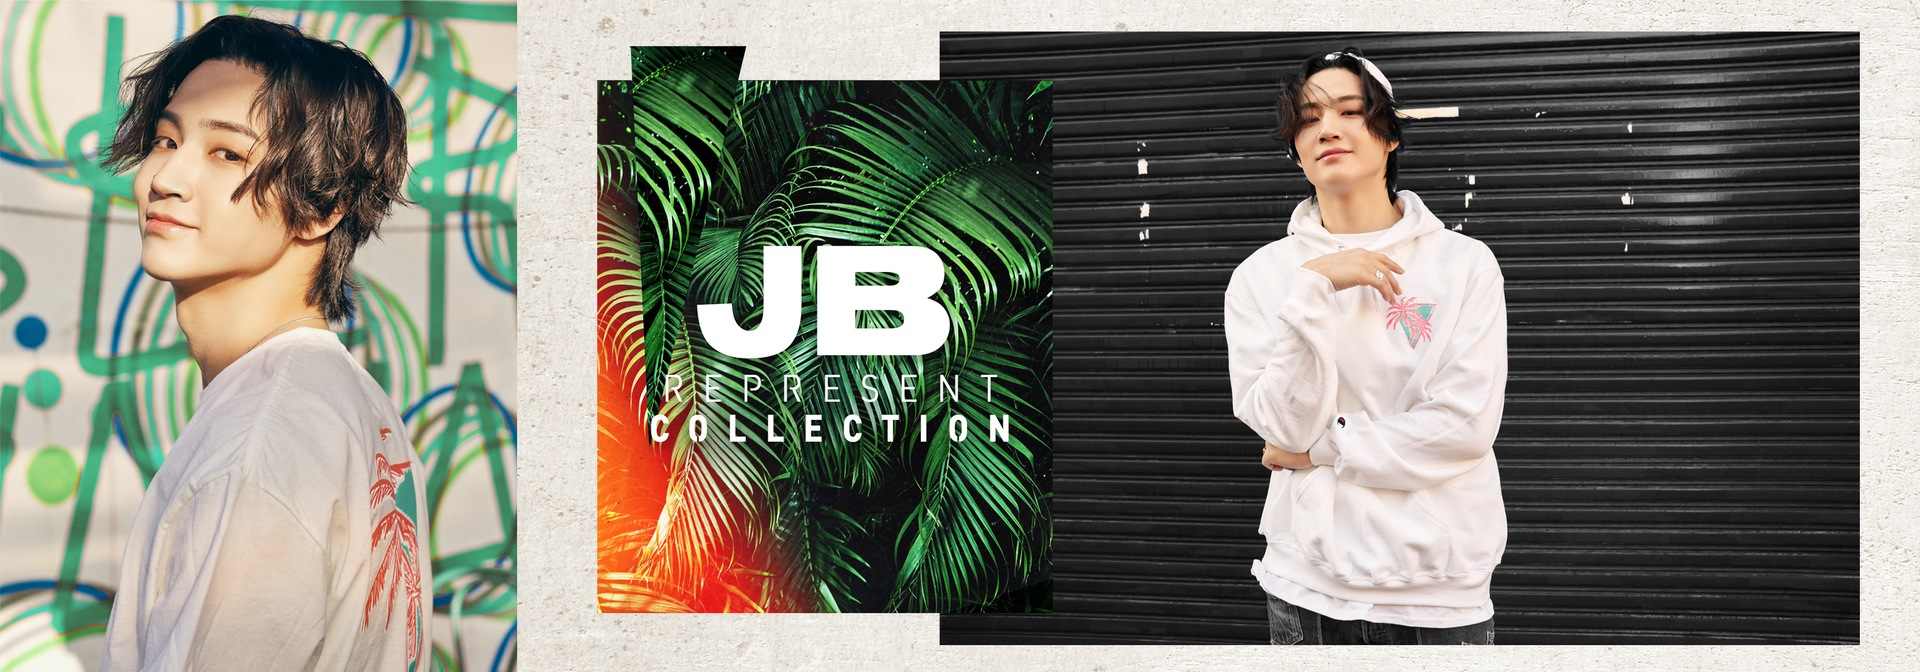 JB COLLECTION Store